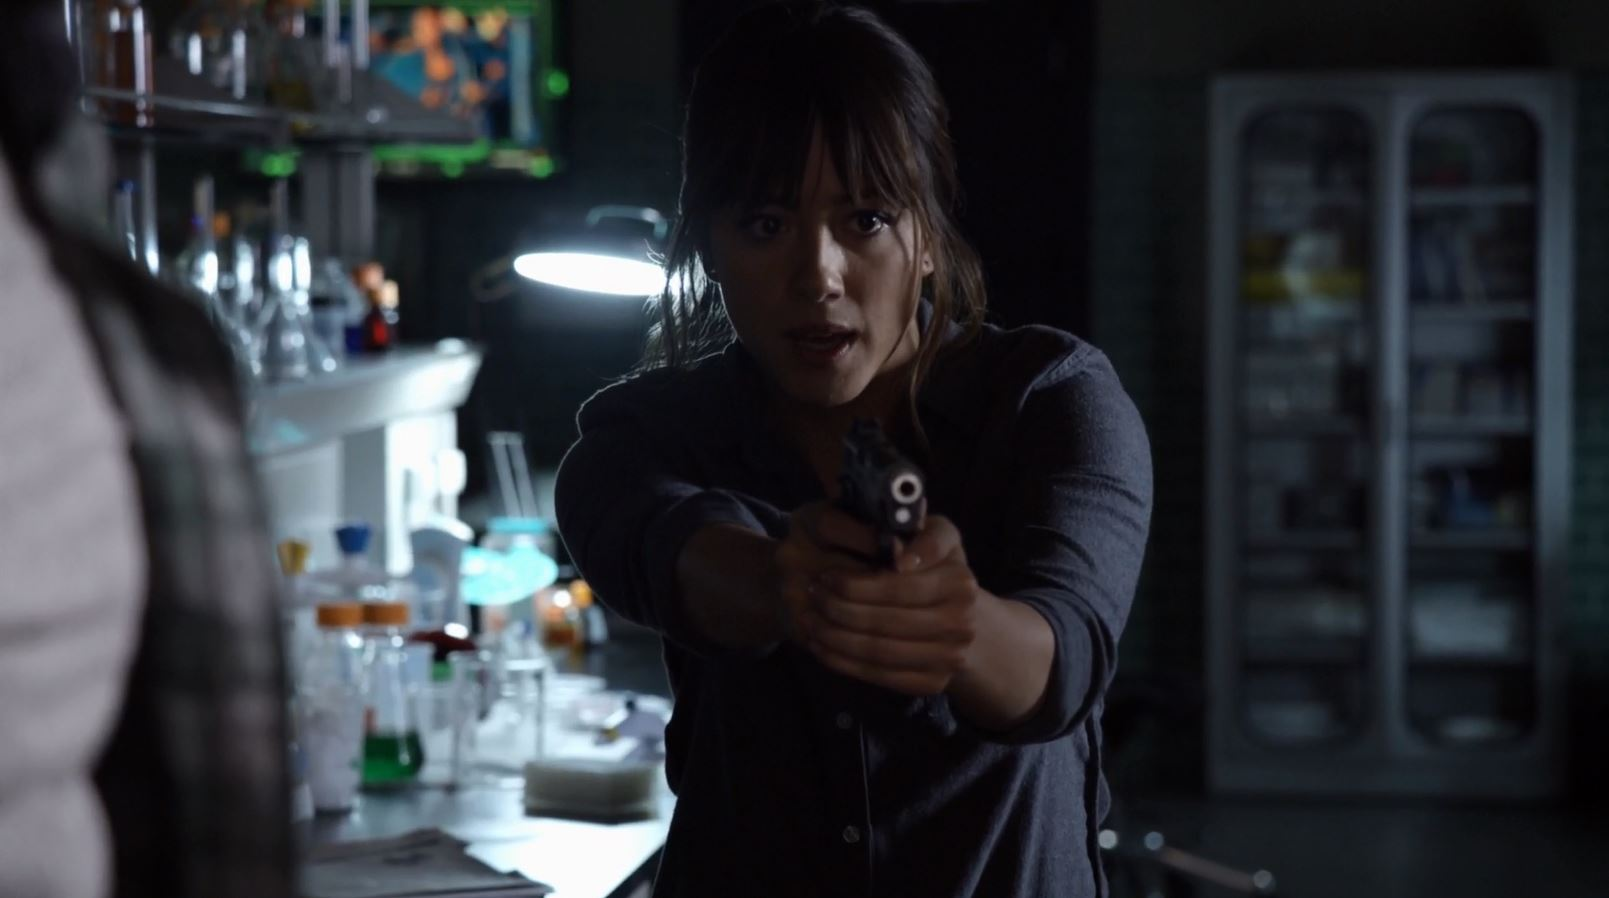 Chloe Bennet as Skye points a gun at Coulson - Agents of SHIELD The Writing on the Wall Review